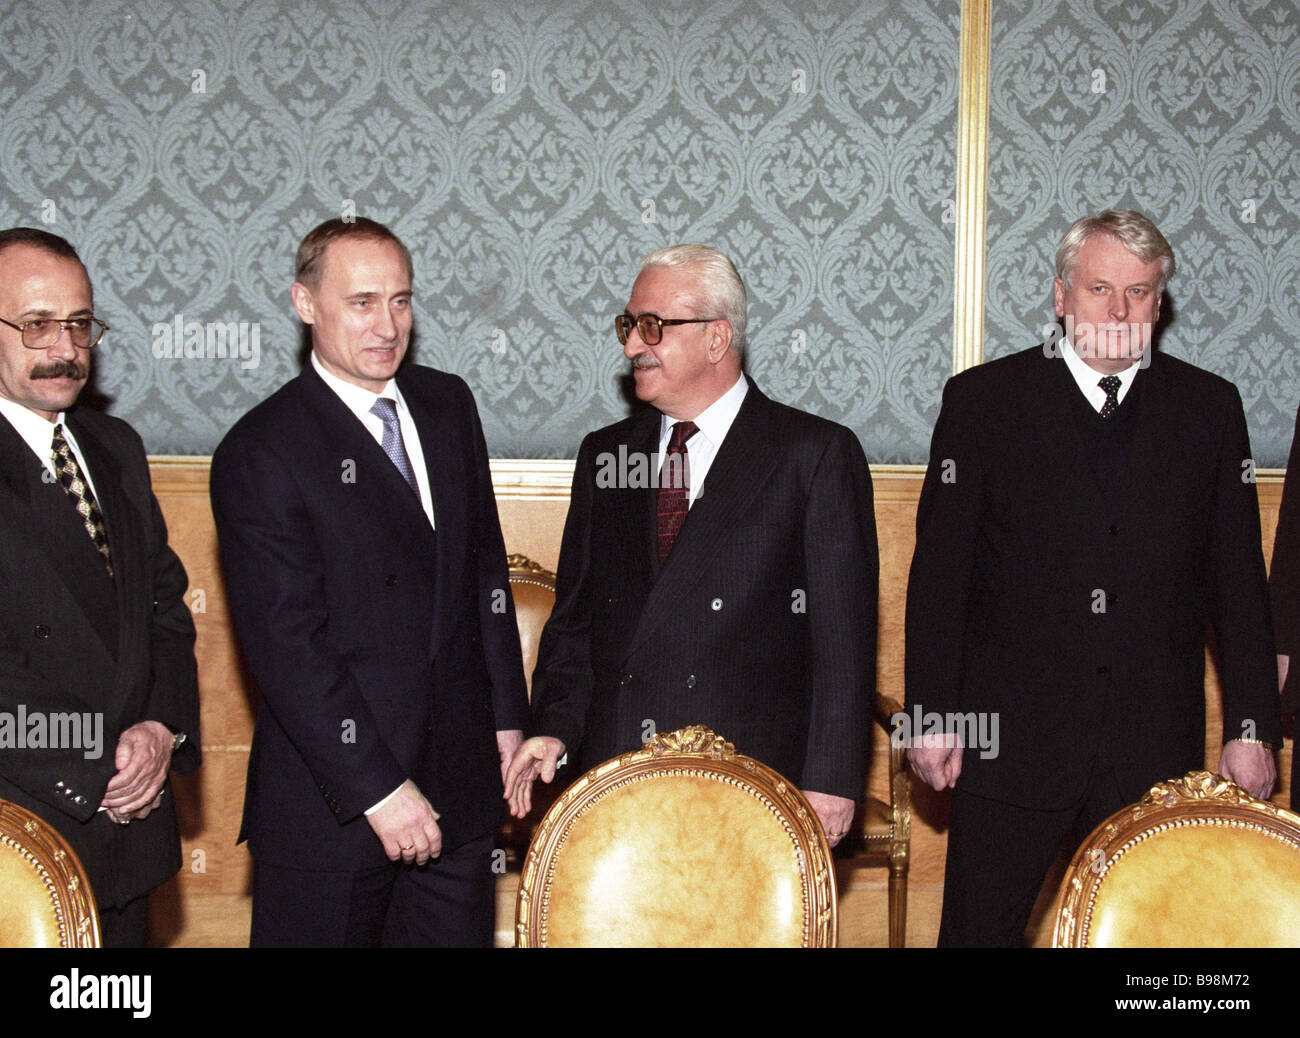 i foreign minister stock photos i foreign minister stock russian prime minister vladimir putin meeting tariq aziz of i foreign minister tariq aziz